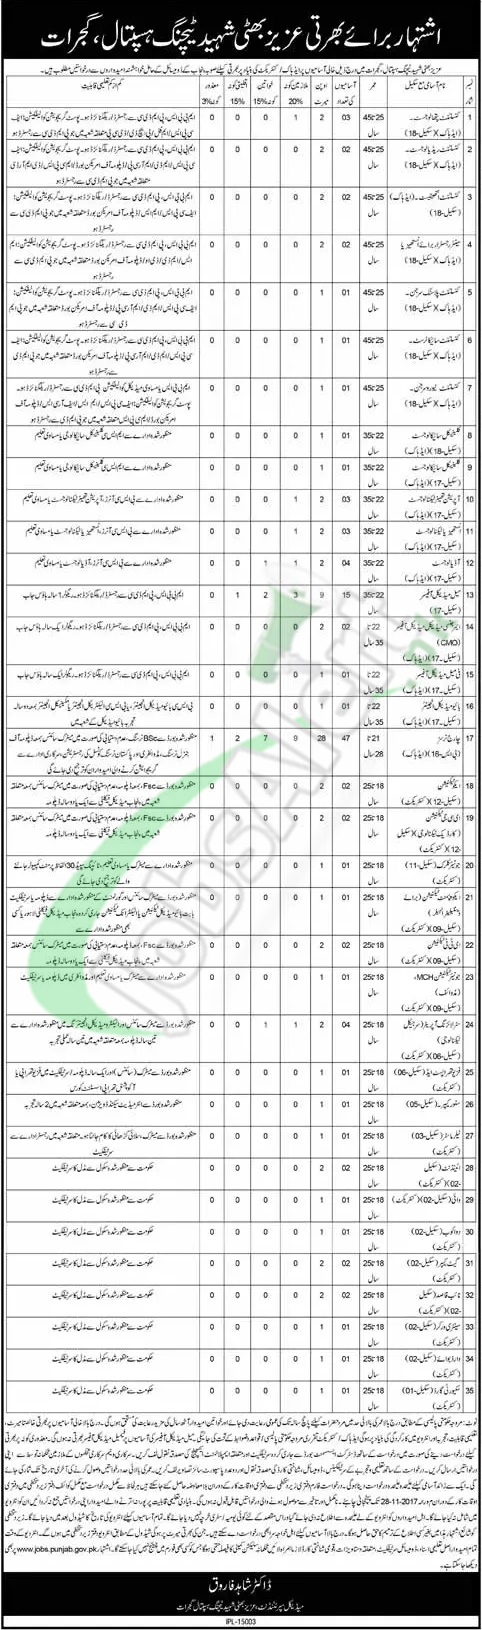 Aziz Bhatti Shaheed Teaching Hospital Gujrat Jobs